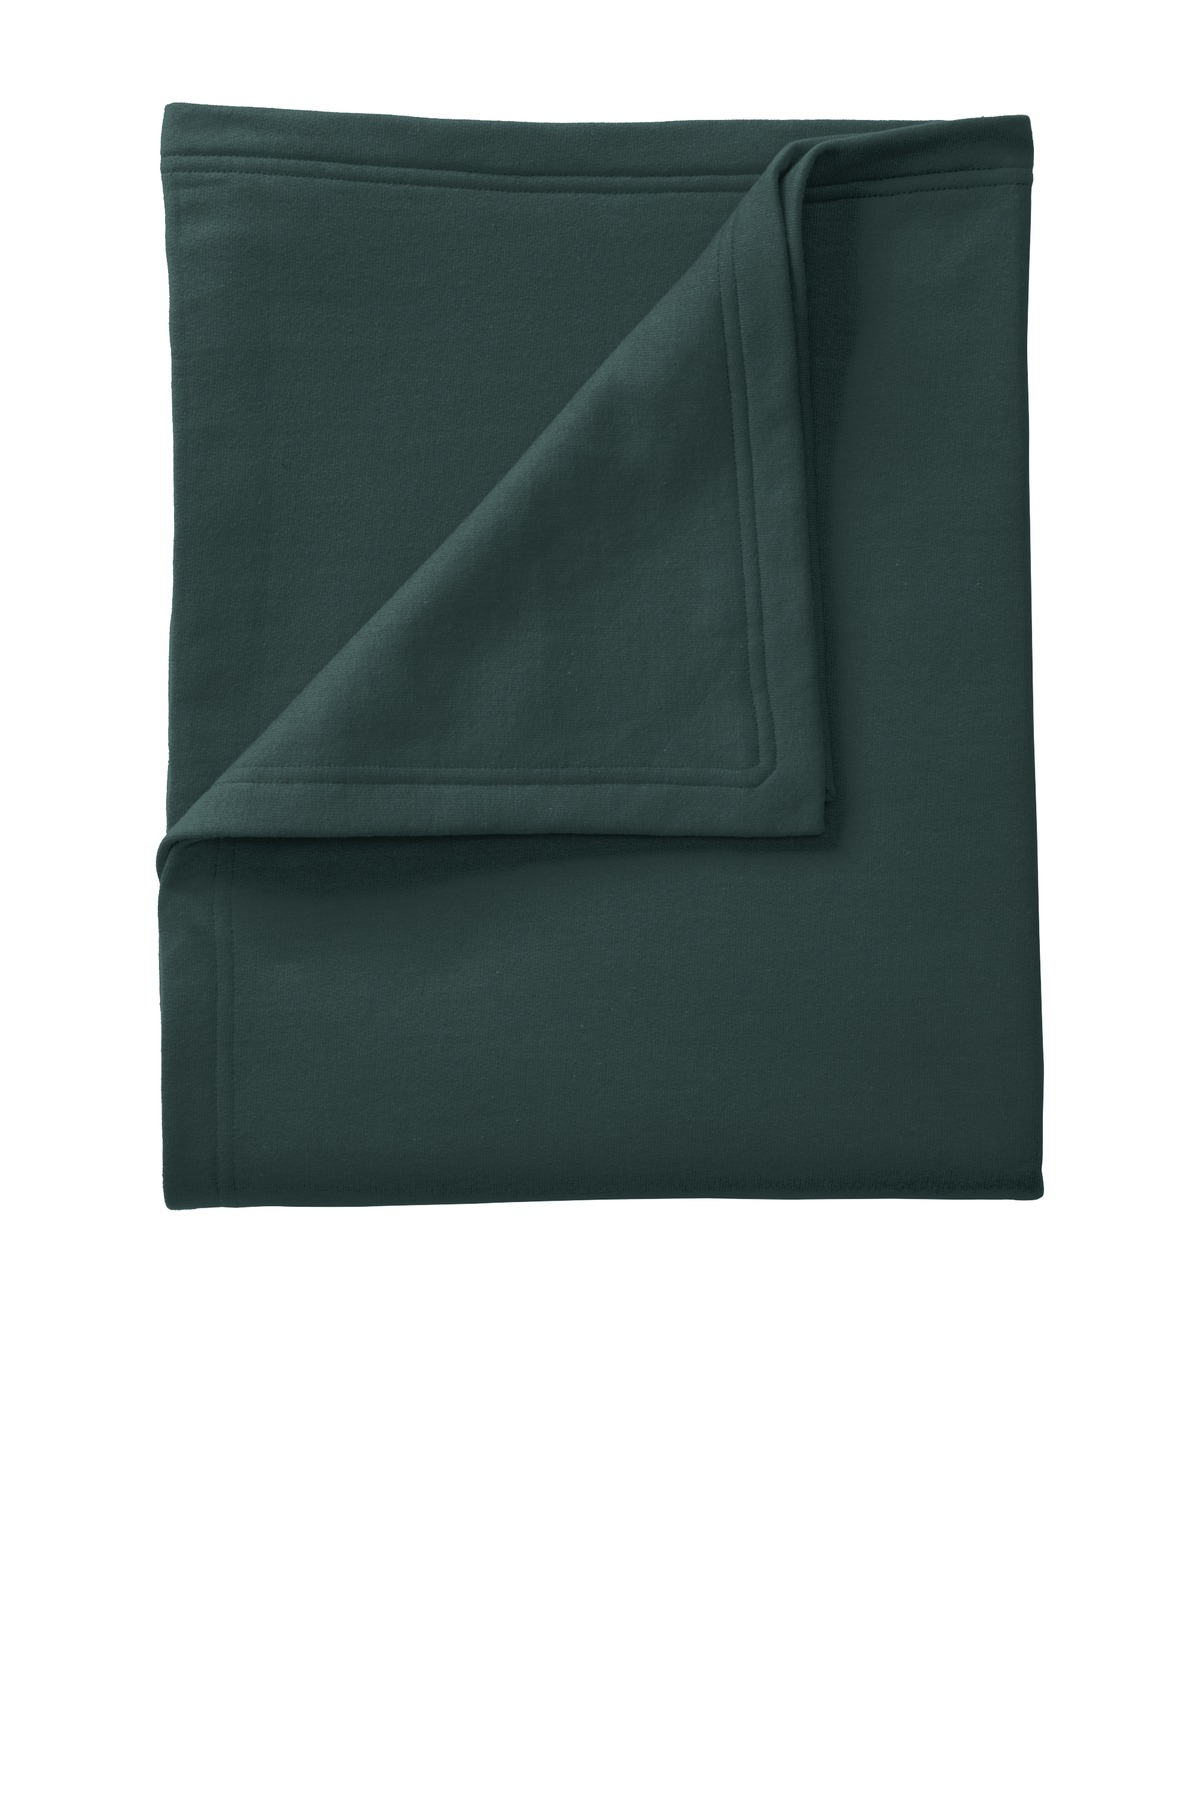 Port & Company ®  Core Fleece Sweatshirt Blanket. BP78 - Dark Green